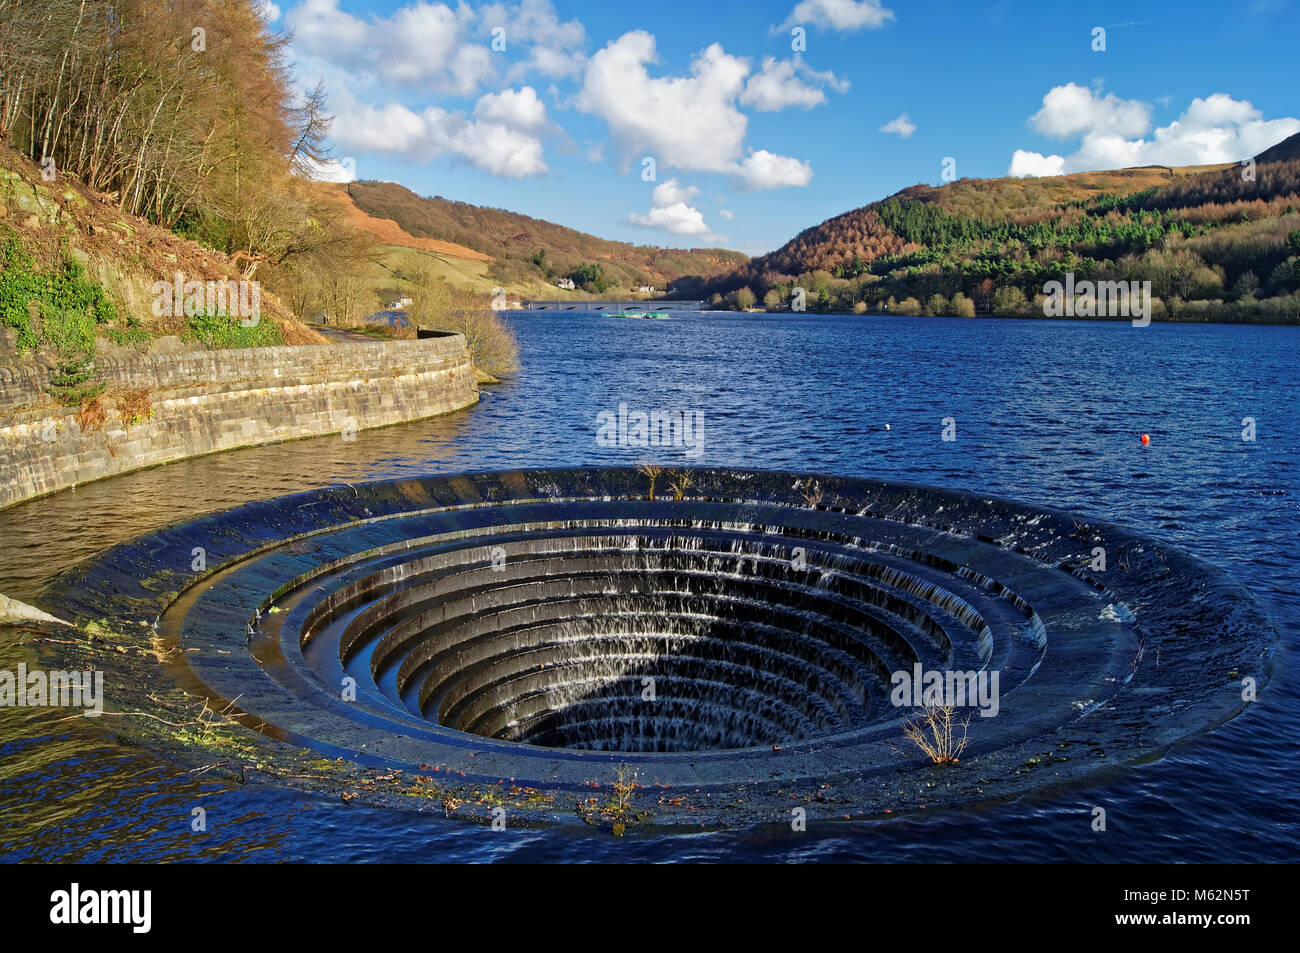 UK,Derbyshire,Peak District,Ladybower Reservoir and Plug Hole - Stock Image